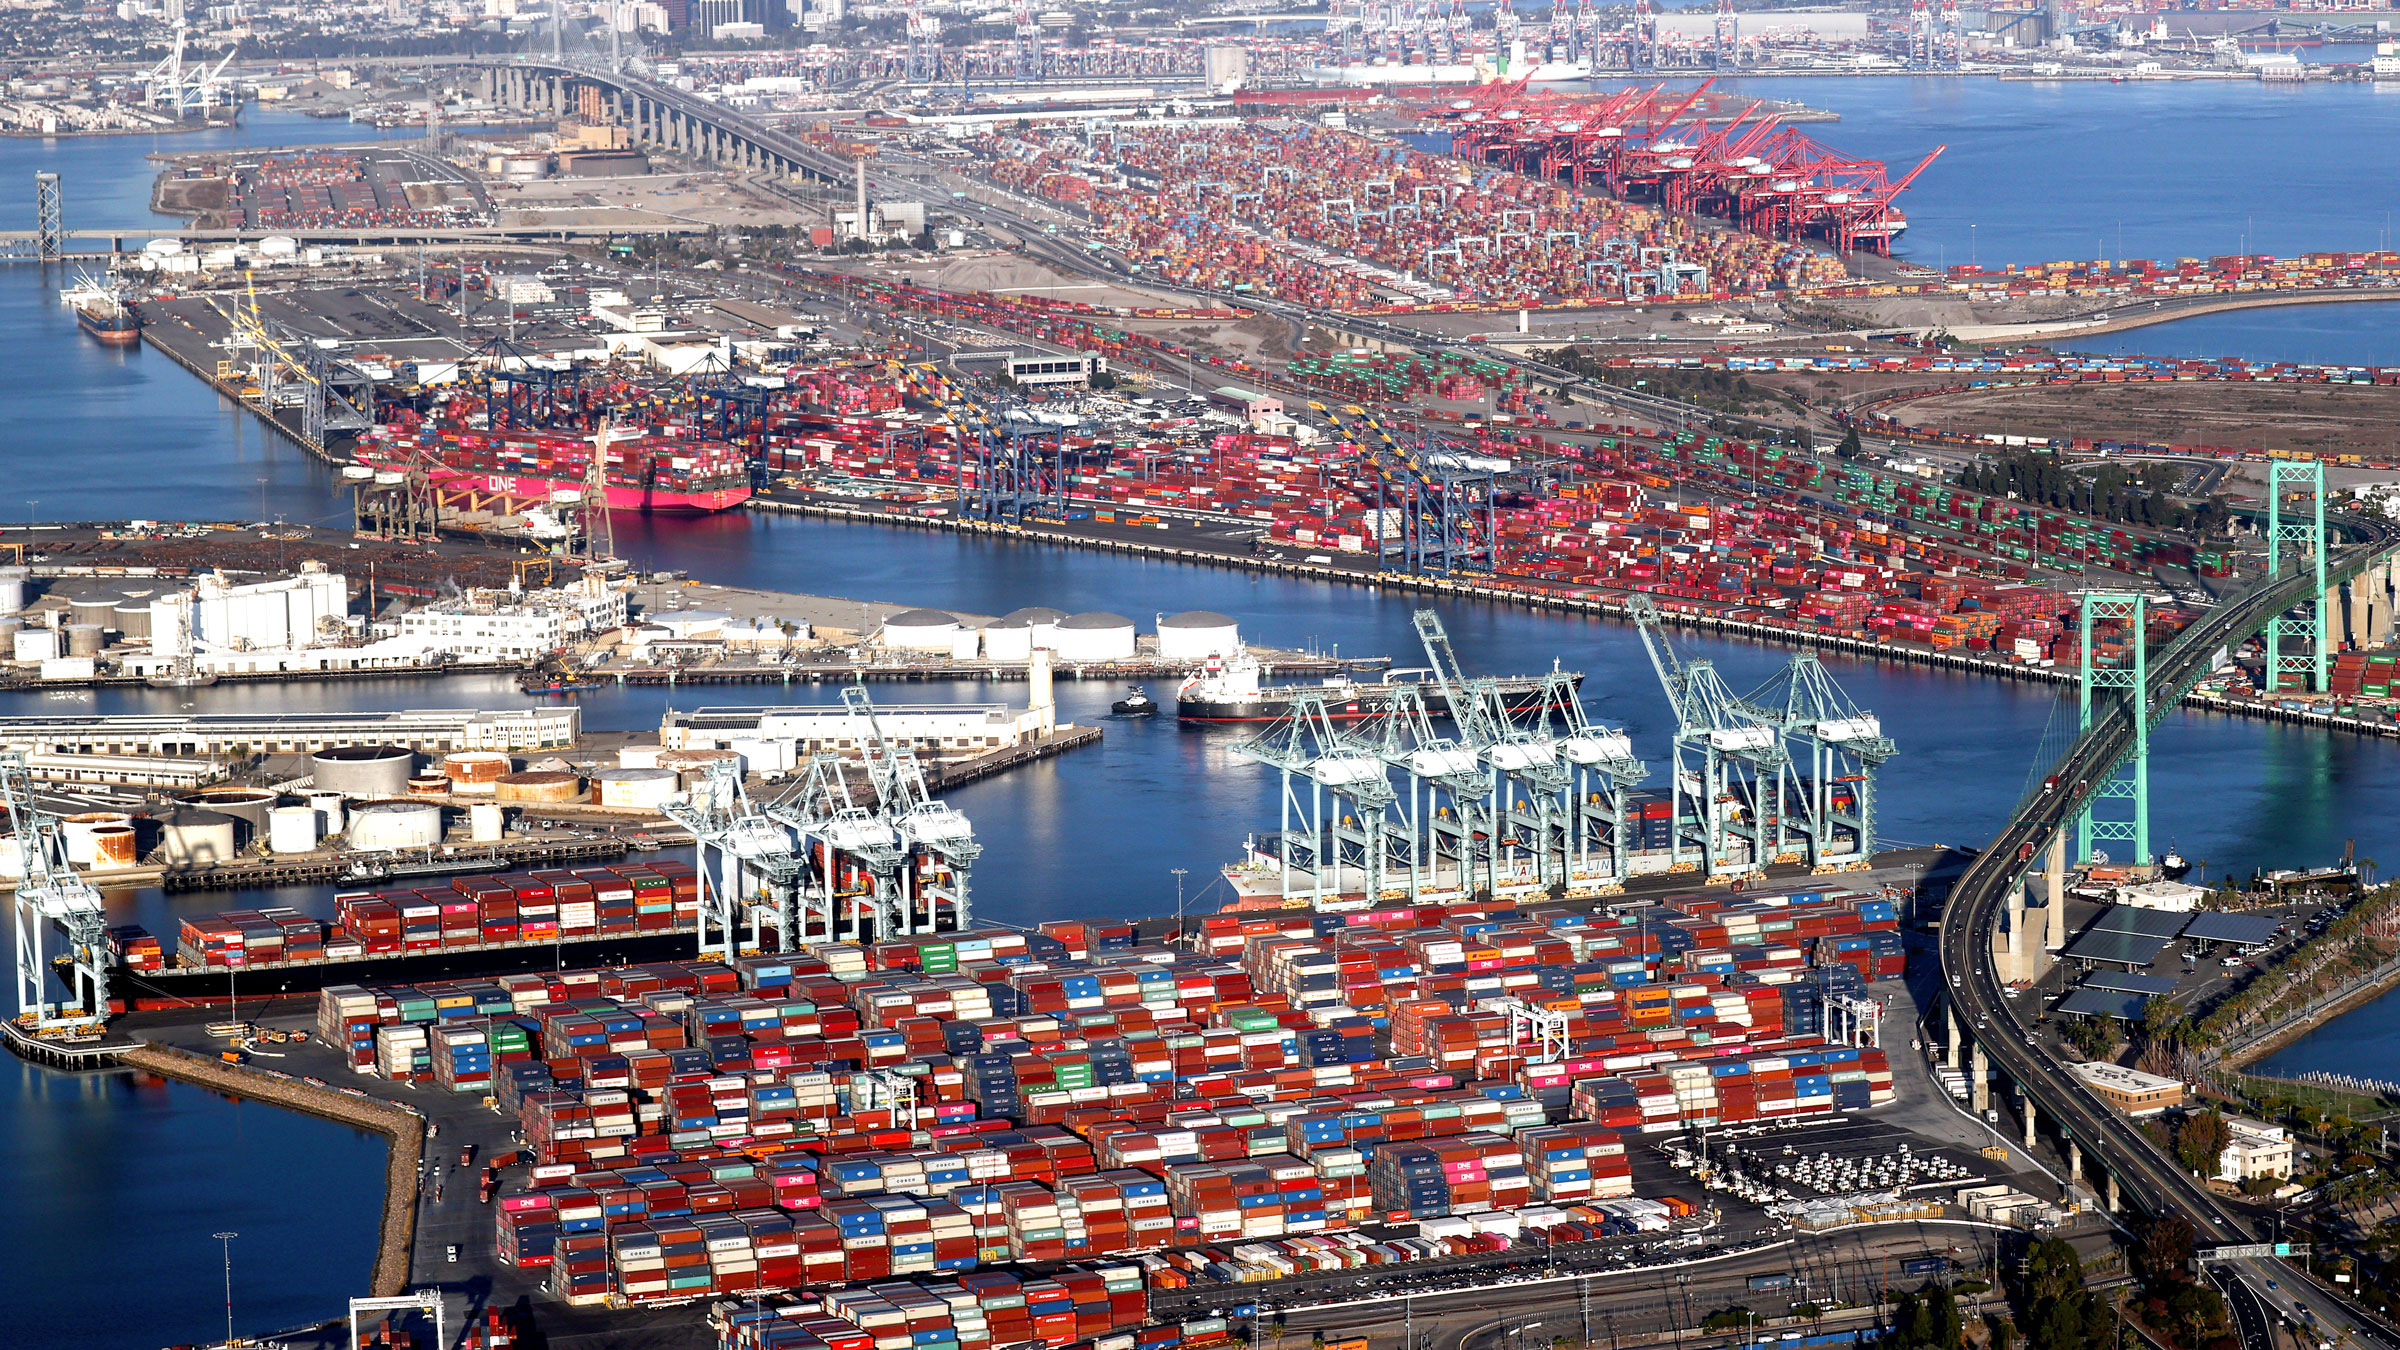 Shipping containers and container ships are seen at the ports of Long Beach and Los Angeles on September 20.